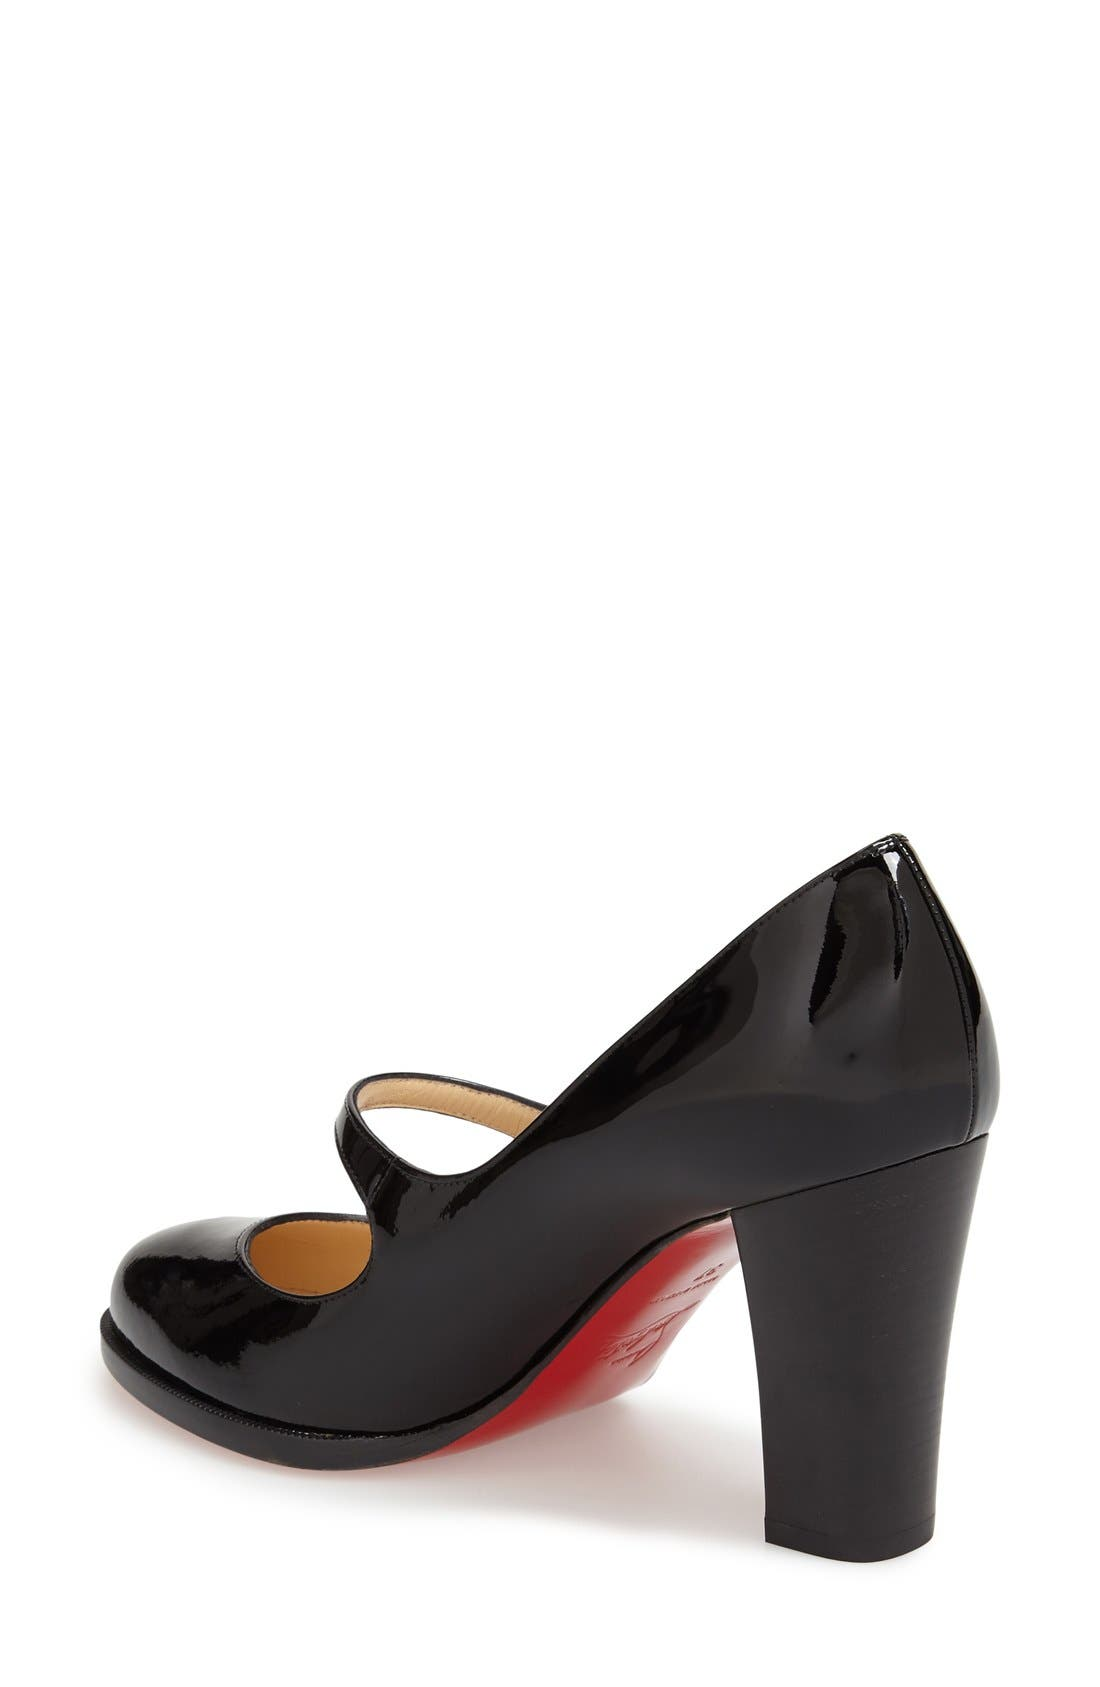 Top Street Mary Jane Pump,                             Alternate thumbnail 2, color,                             001